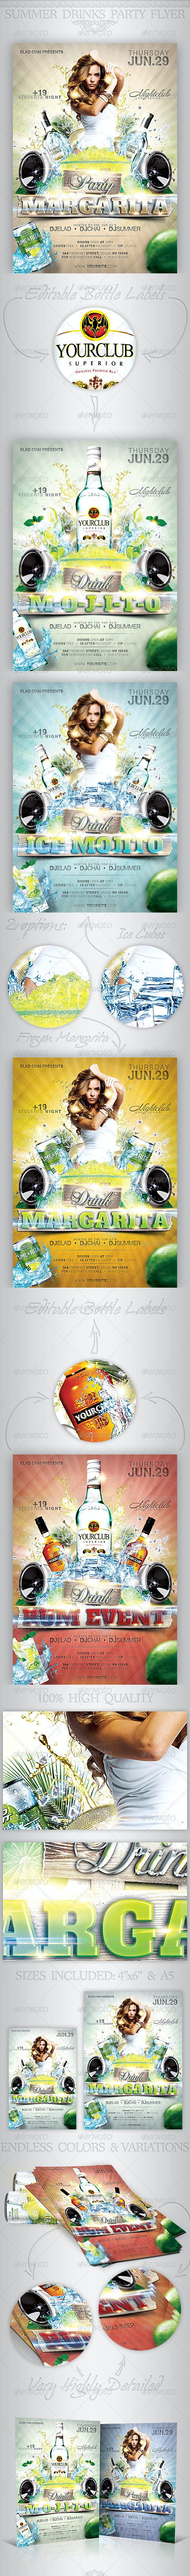 Summer Drinks Event Party Flyer - Clubs & Parties Events